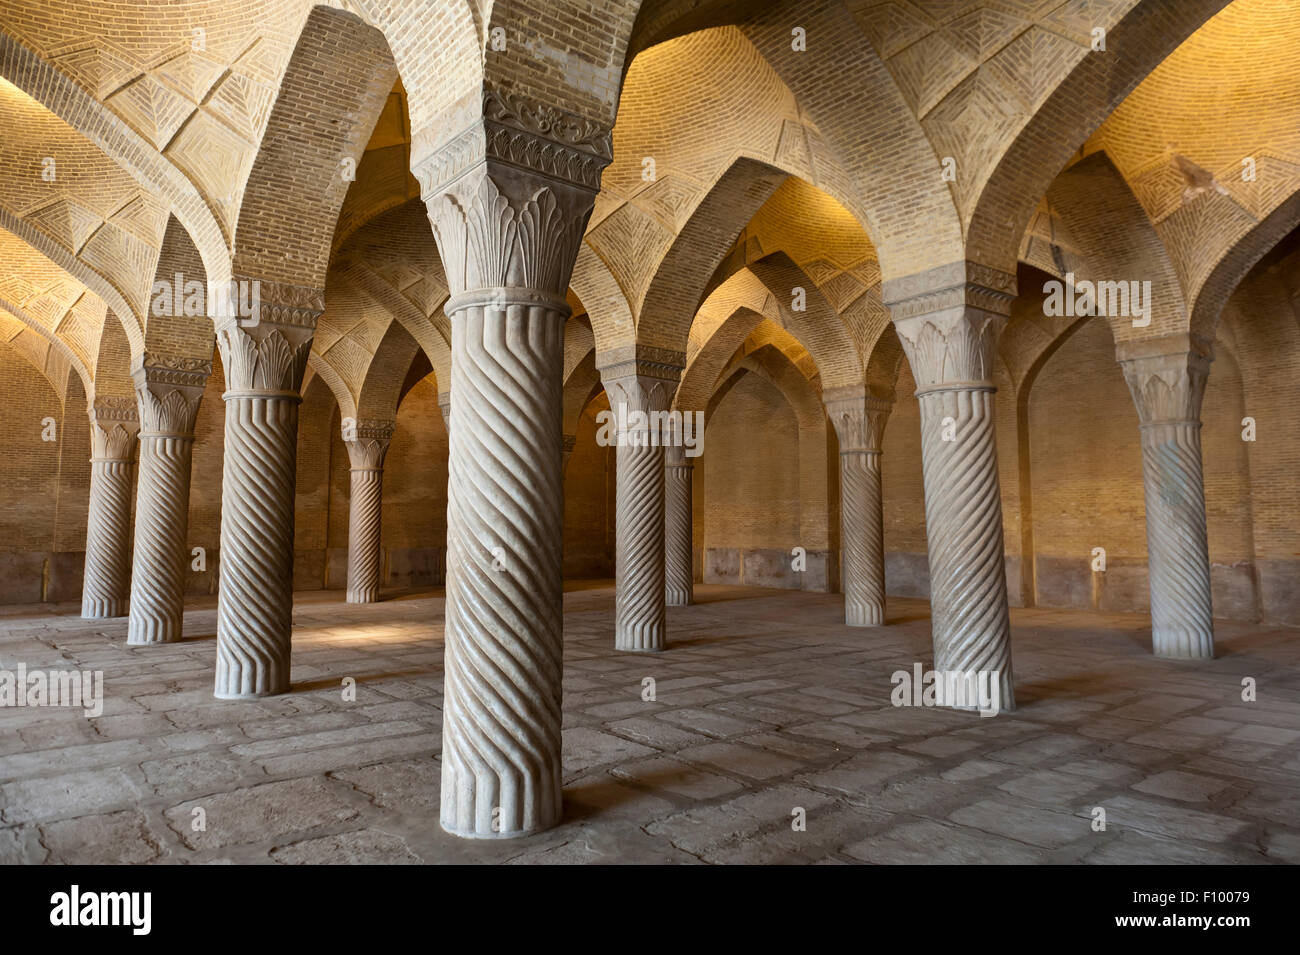 Decorated pillars in the prayer hall, Wakil Mosque, also Vakil Mosque or Masjid-e Vakil, Shiraz, Iran - Stock Image